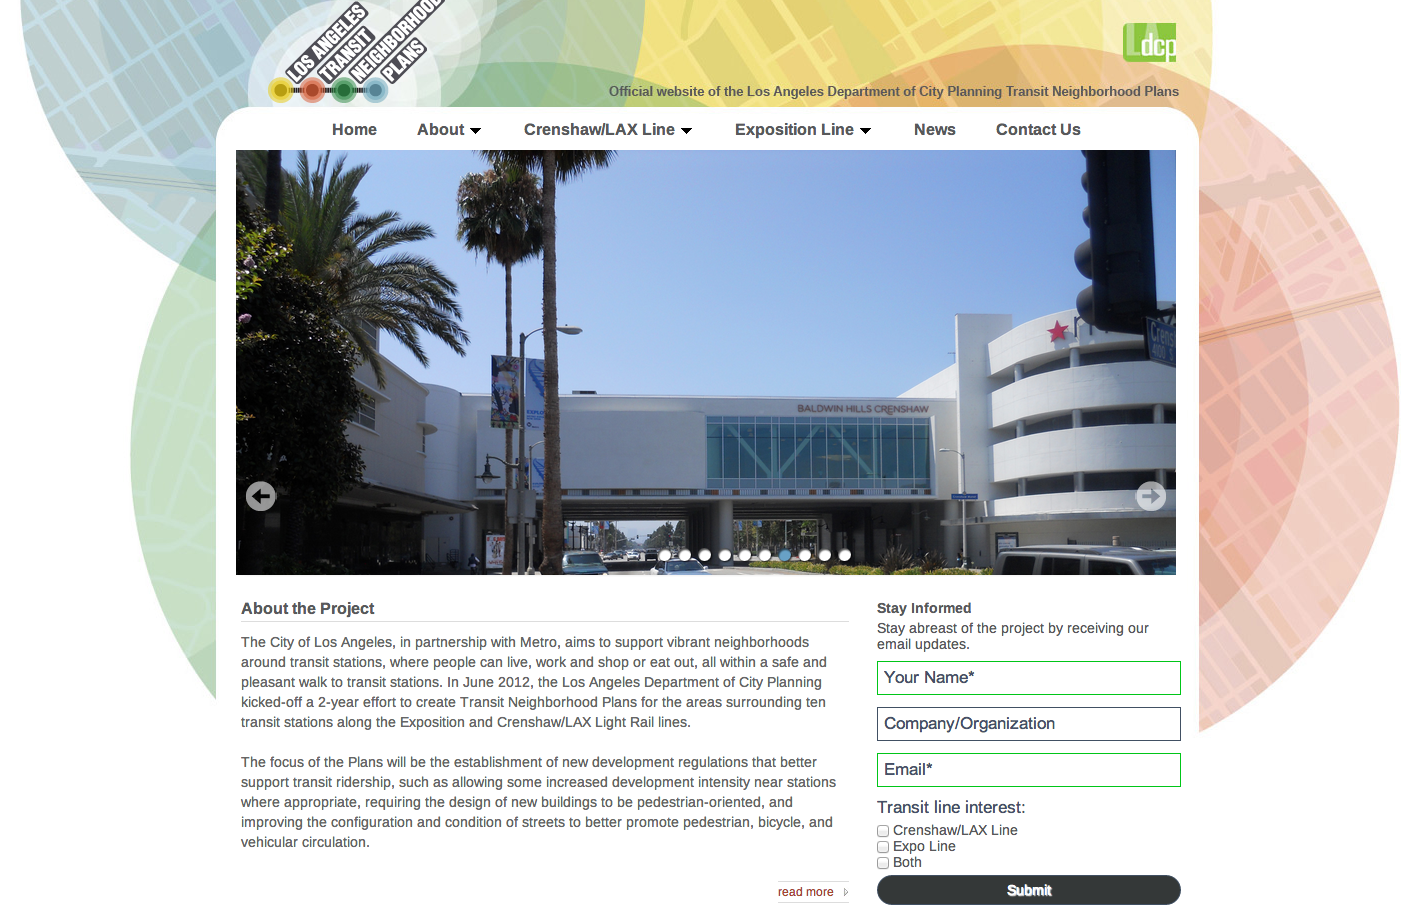 Click above to visit the Los Angeles Planning Department's website detailing the ongoing process to develop zoning plans near transit stations for both the Expo and Crenshaw/LAX Lines.